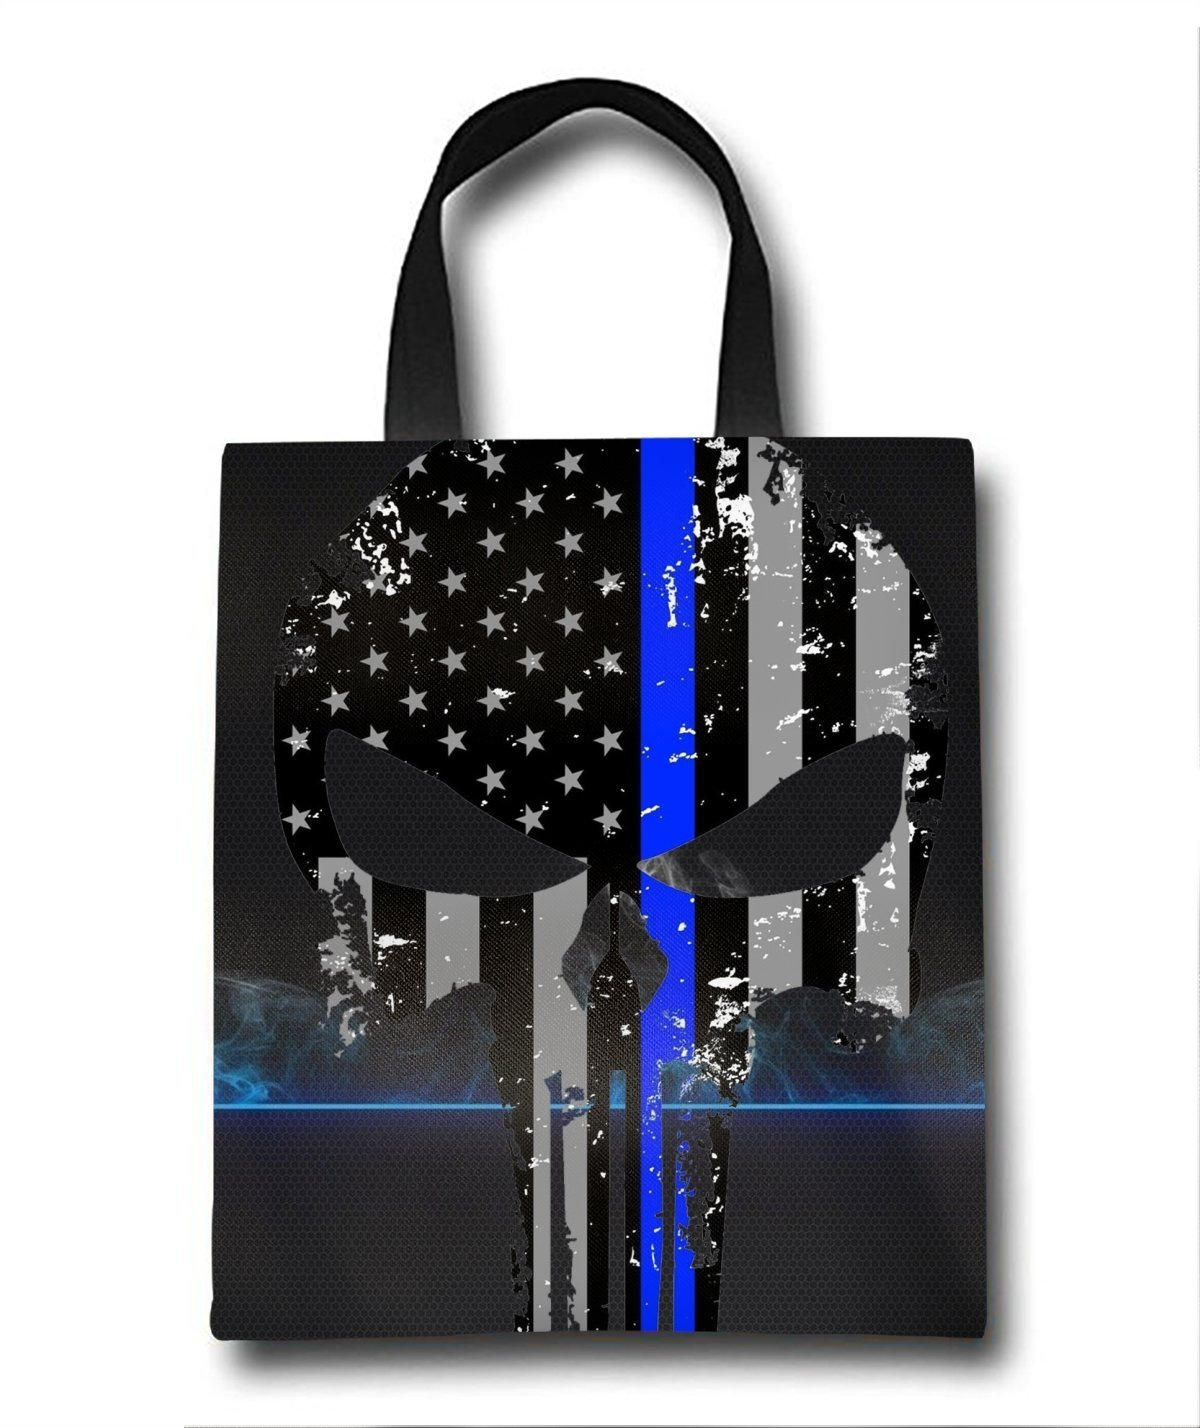 American Flag Skull Beach Tote Bag - Toy Tote Bag - Large Lightweight Market, Grocery & Picnic